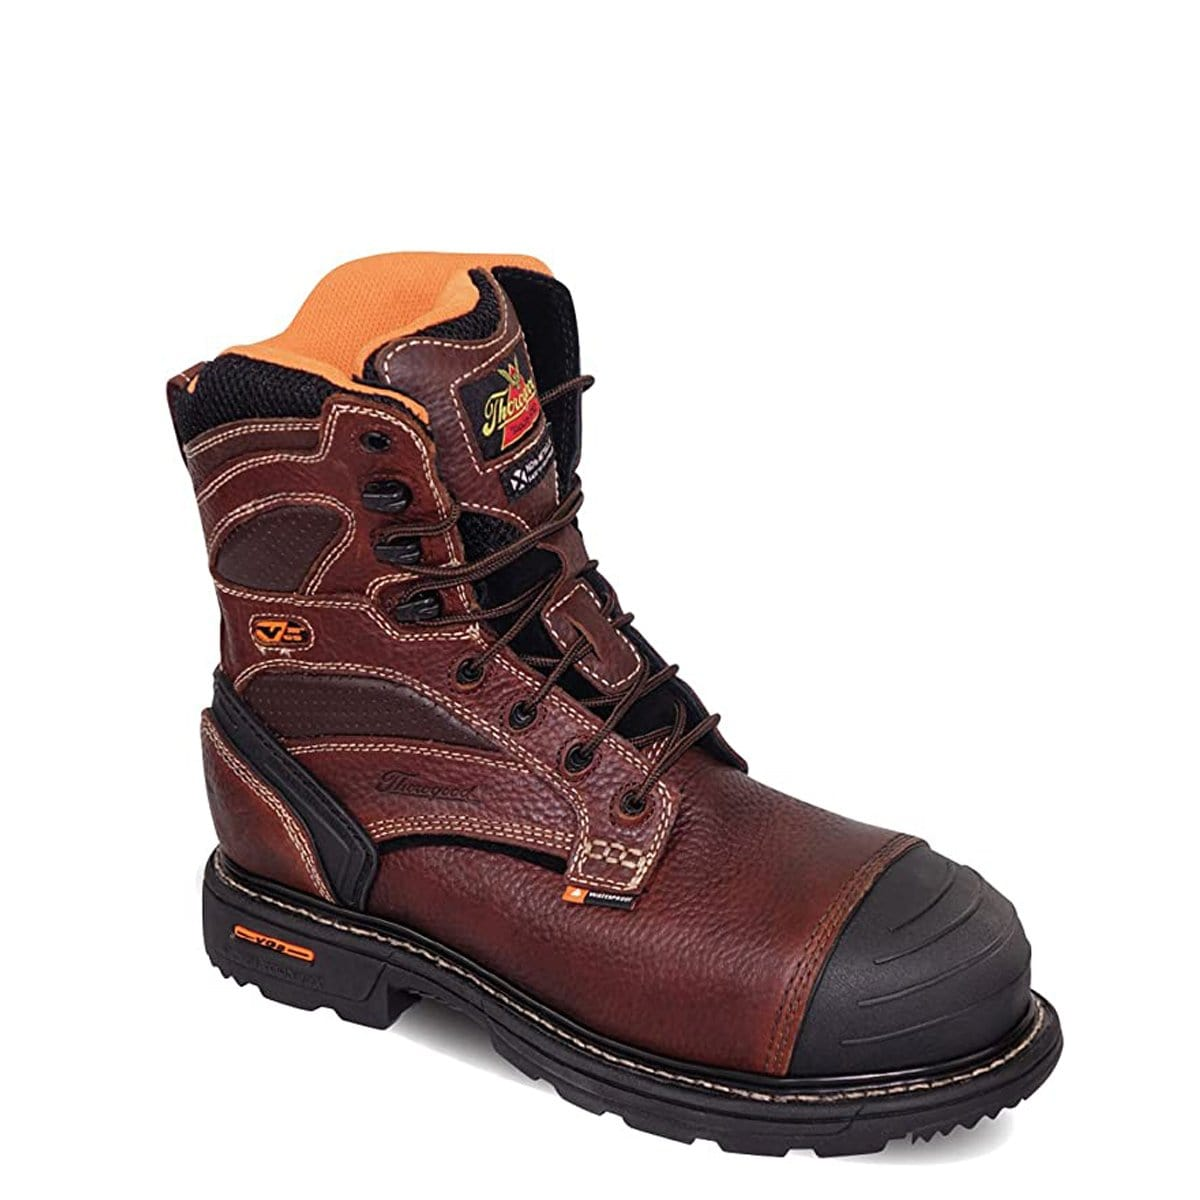 Thorogood GEN-Flex3 8in Waterproof Insulated Composite Safety Toe Boots 804-4459